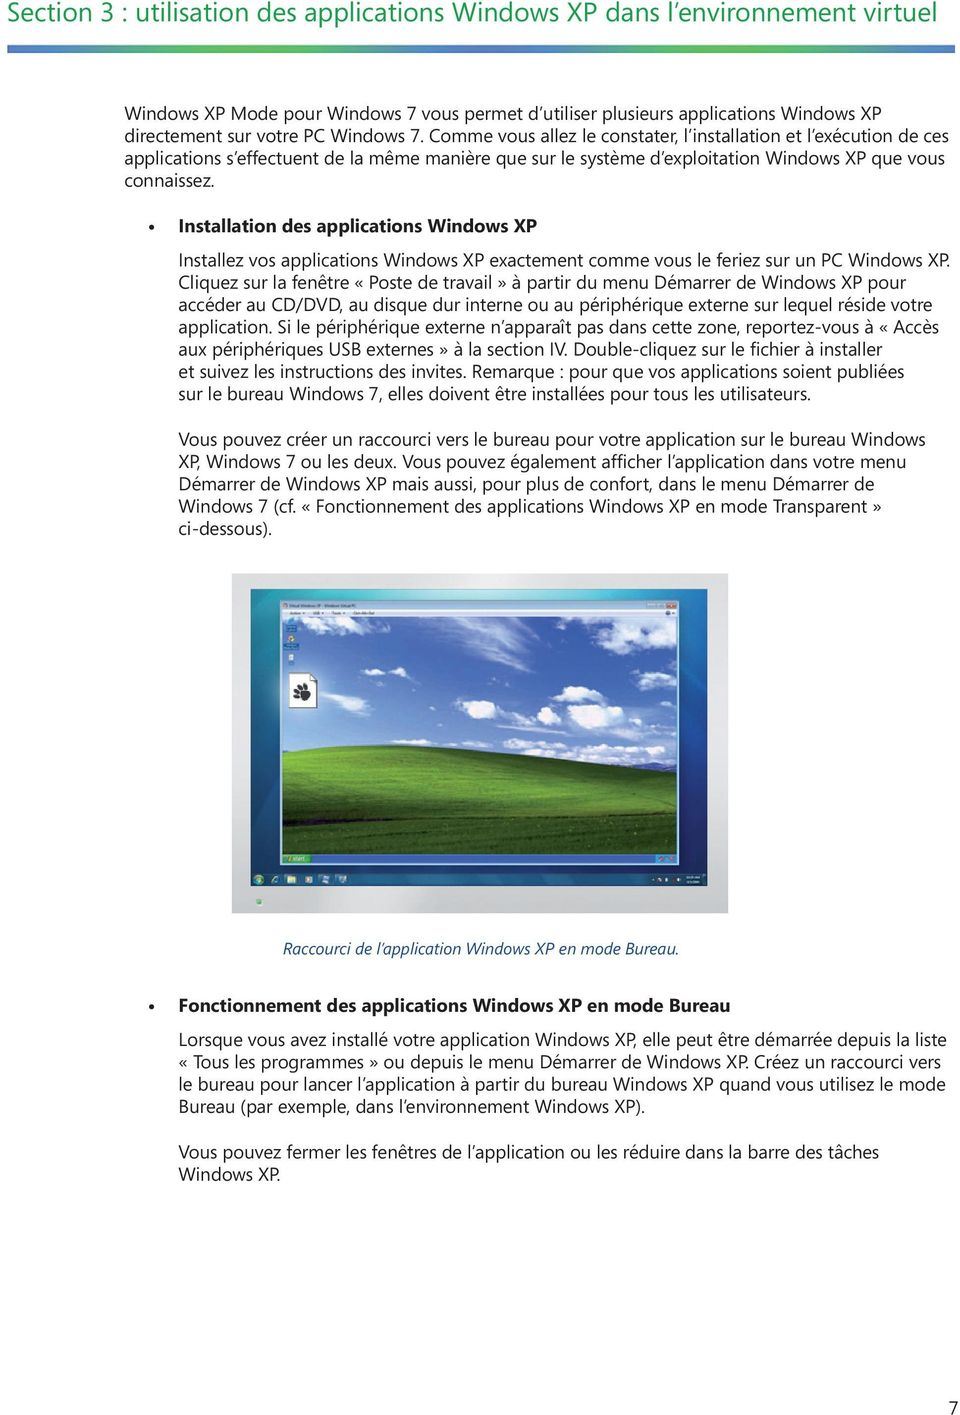 Installation des applications Windows XP Installez vos applications Windows XP exactement comme vous le feriez sur un PC Windows XP.